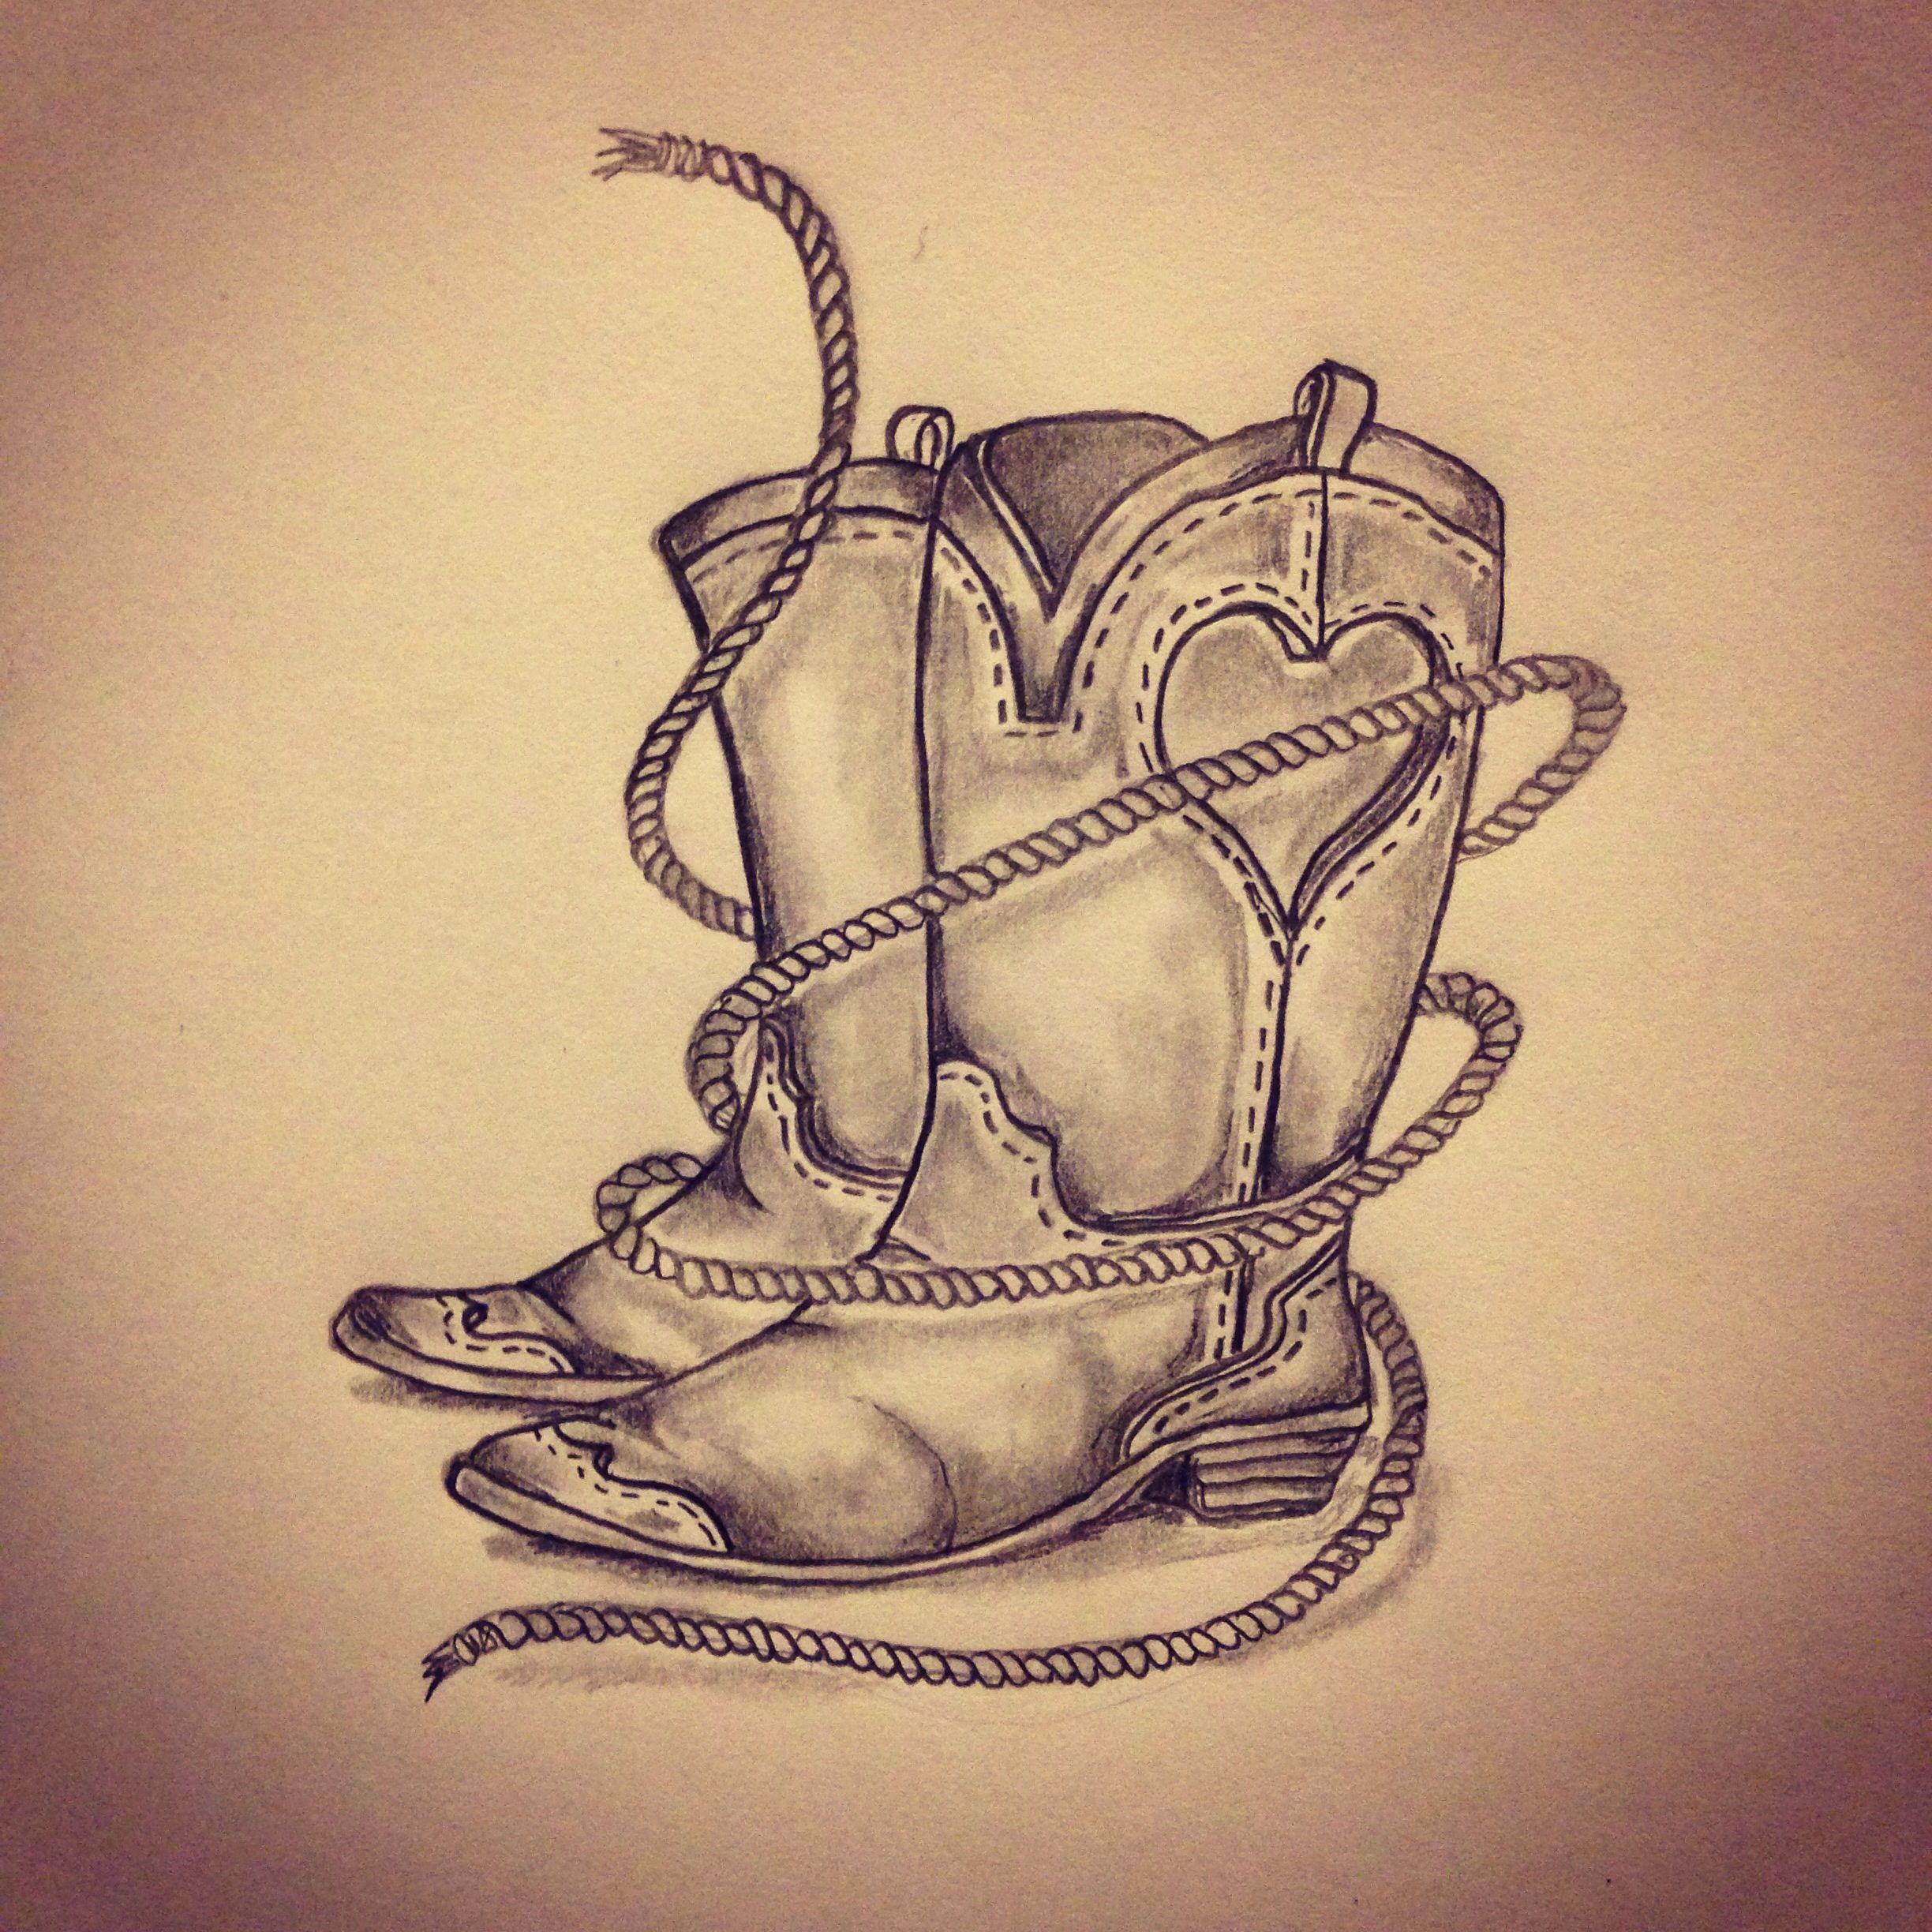 Cowgirl boots / Rope by - Ranz | Pinterest | Cowgirl boot, Tattoo ...